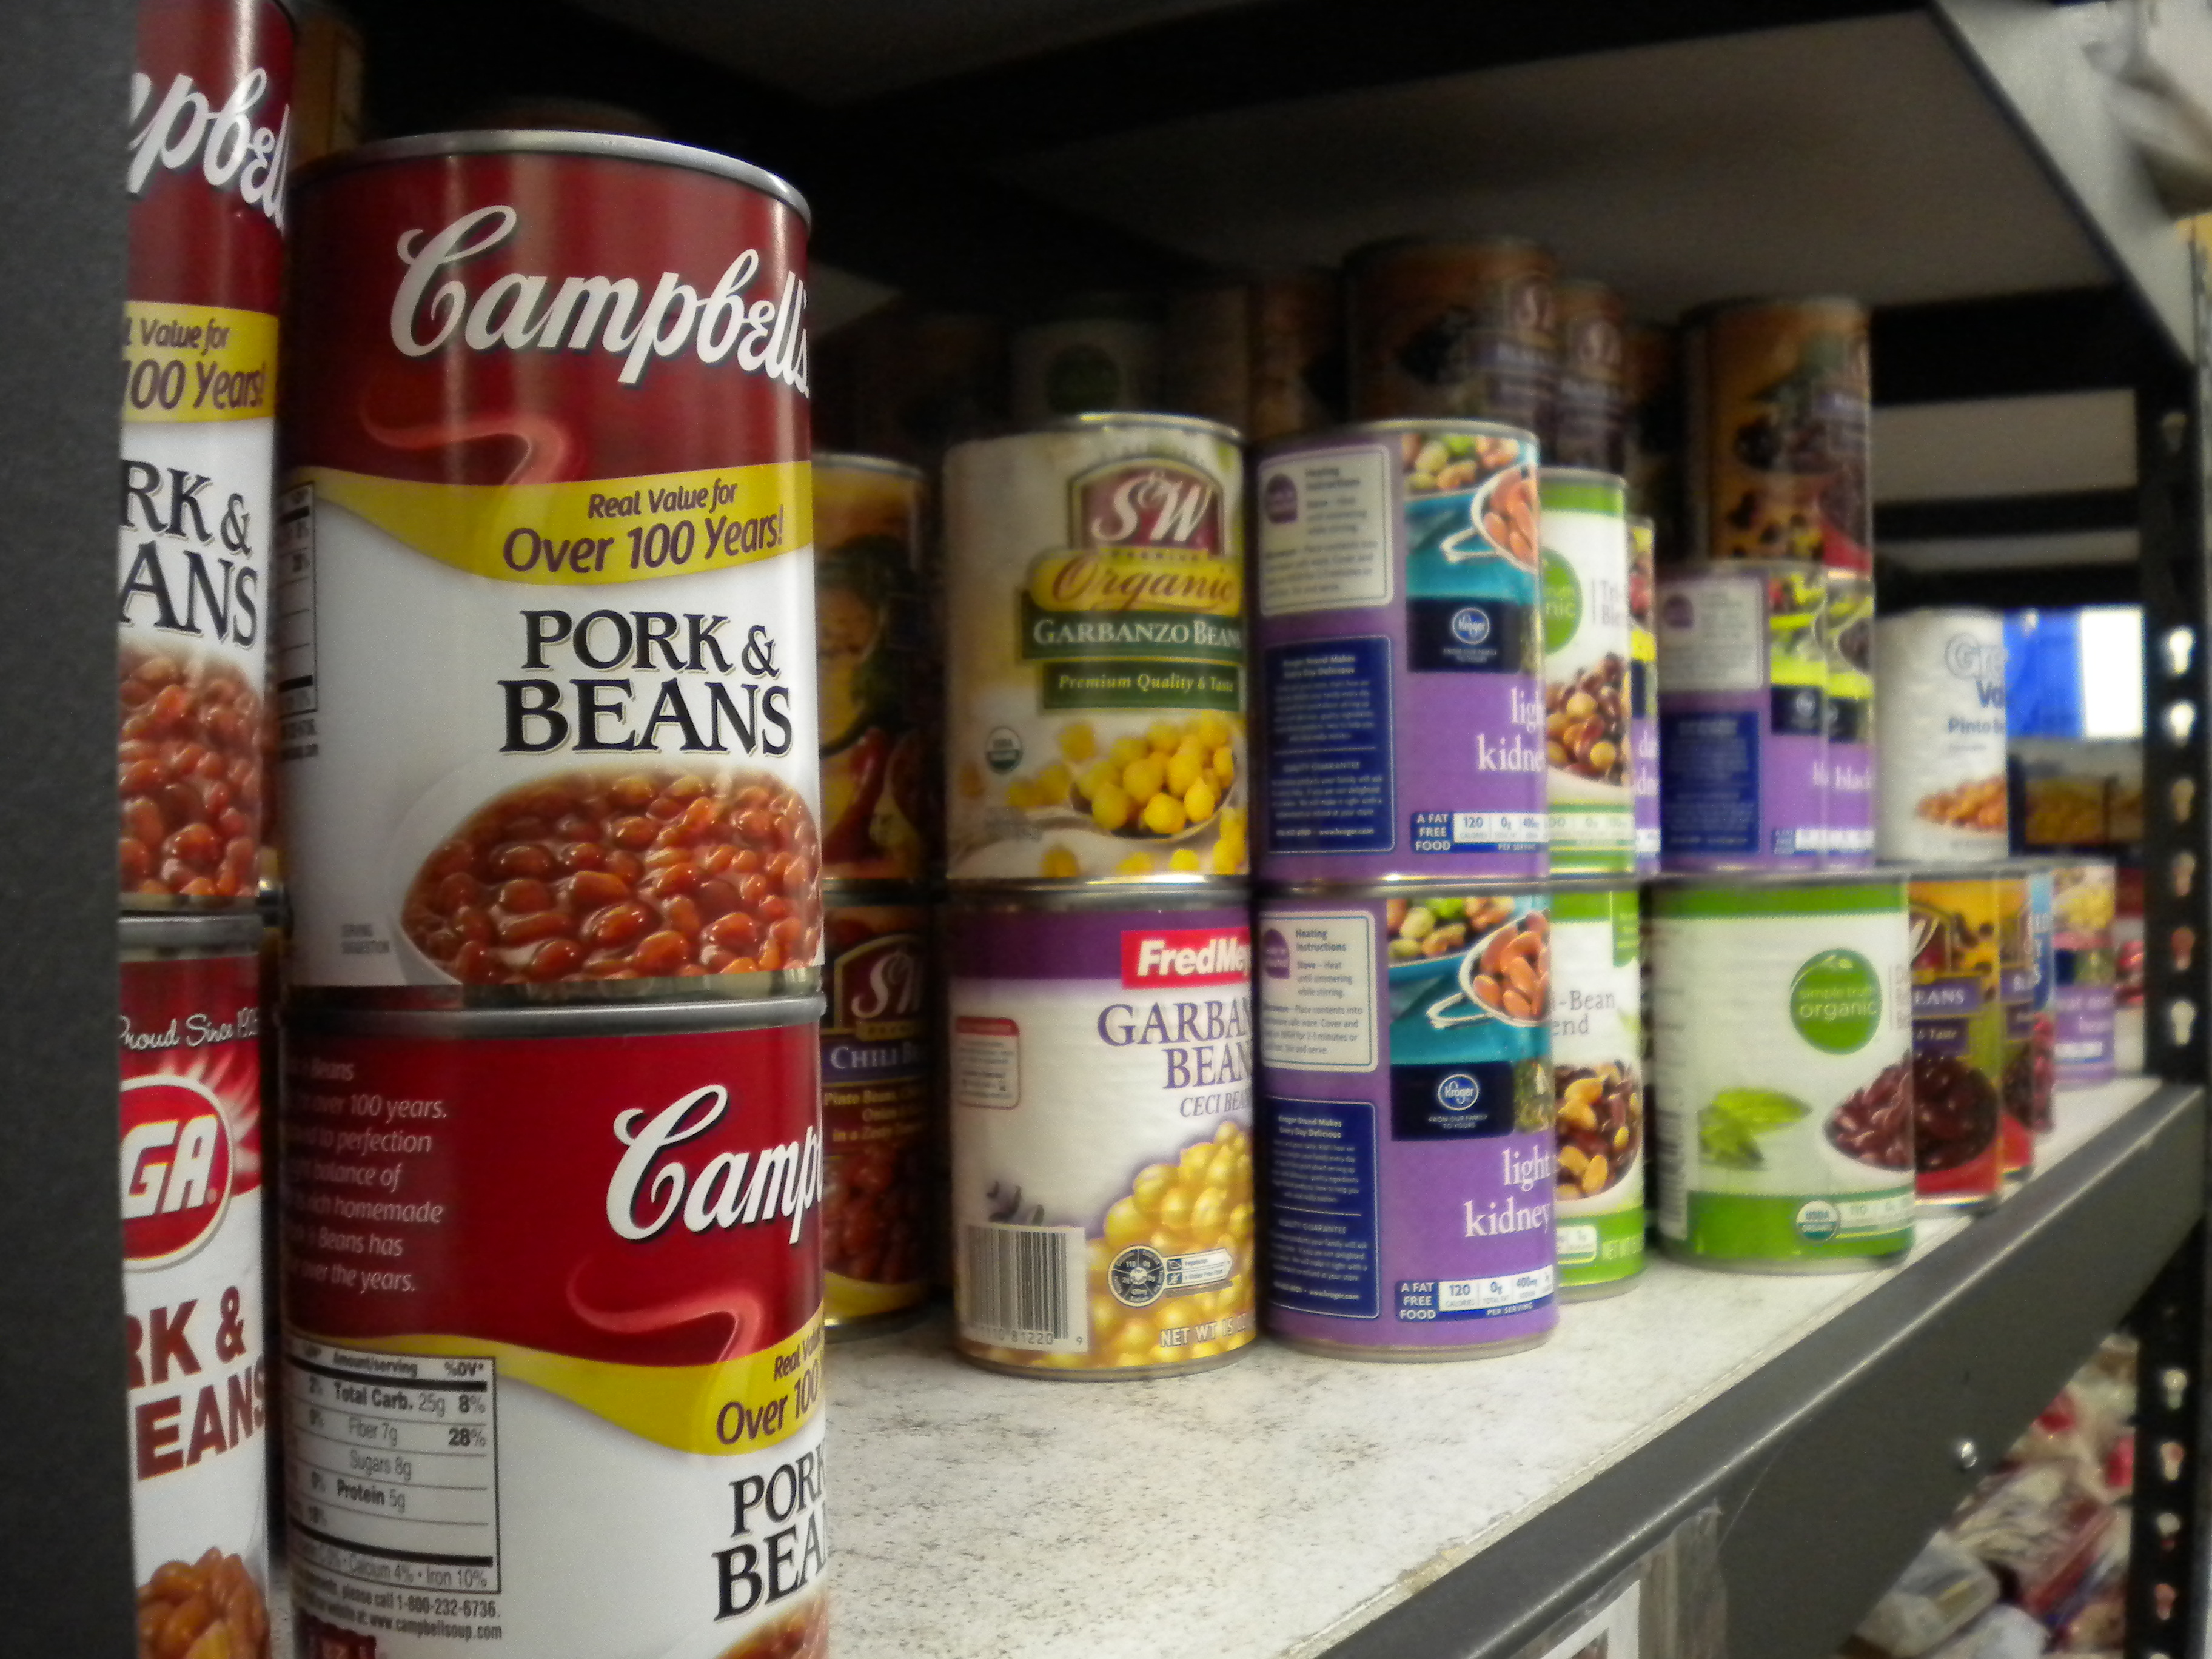 The Southeast Alaska Food Bank allows any individual to visit on Saturday morning to take perishable goods such as milk, meat and cheese. The nonprofit gives its canned foods to local charities. (Photo by Kevin Reagan/ KTOO)